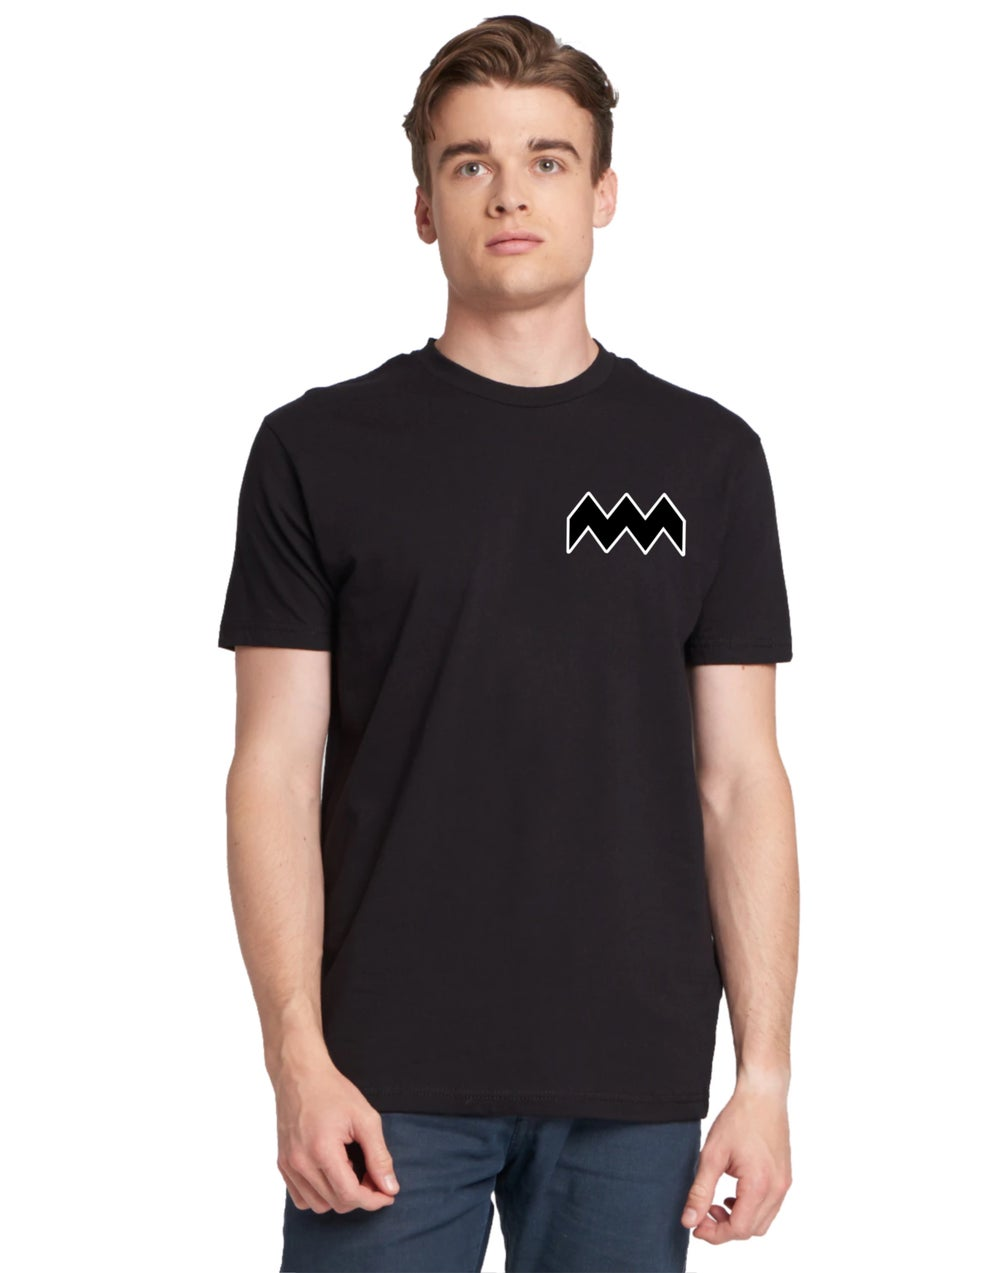 The great omi t-shirt black